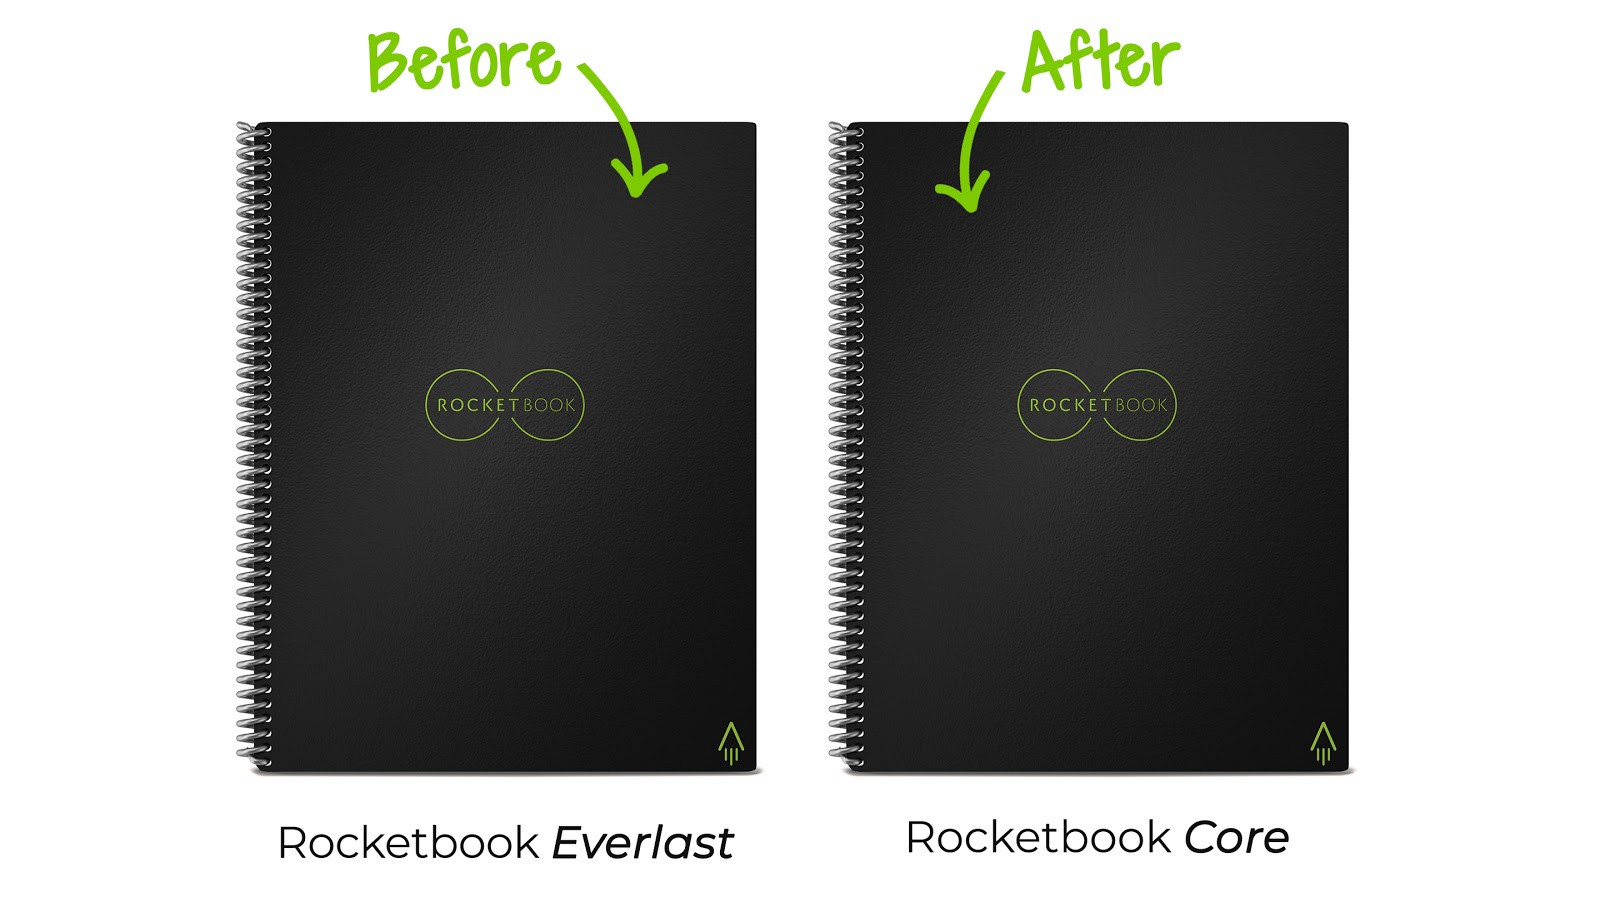 A Biased View of Difference Between Rocketbook Wave And Everlast